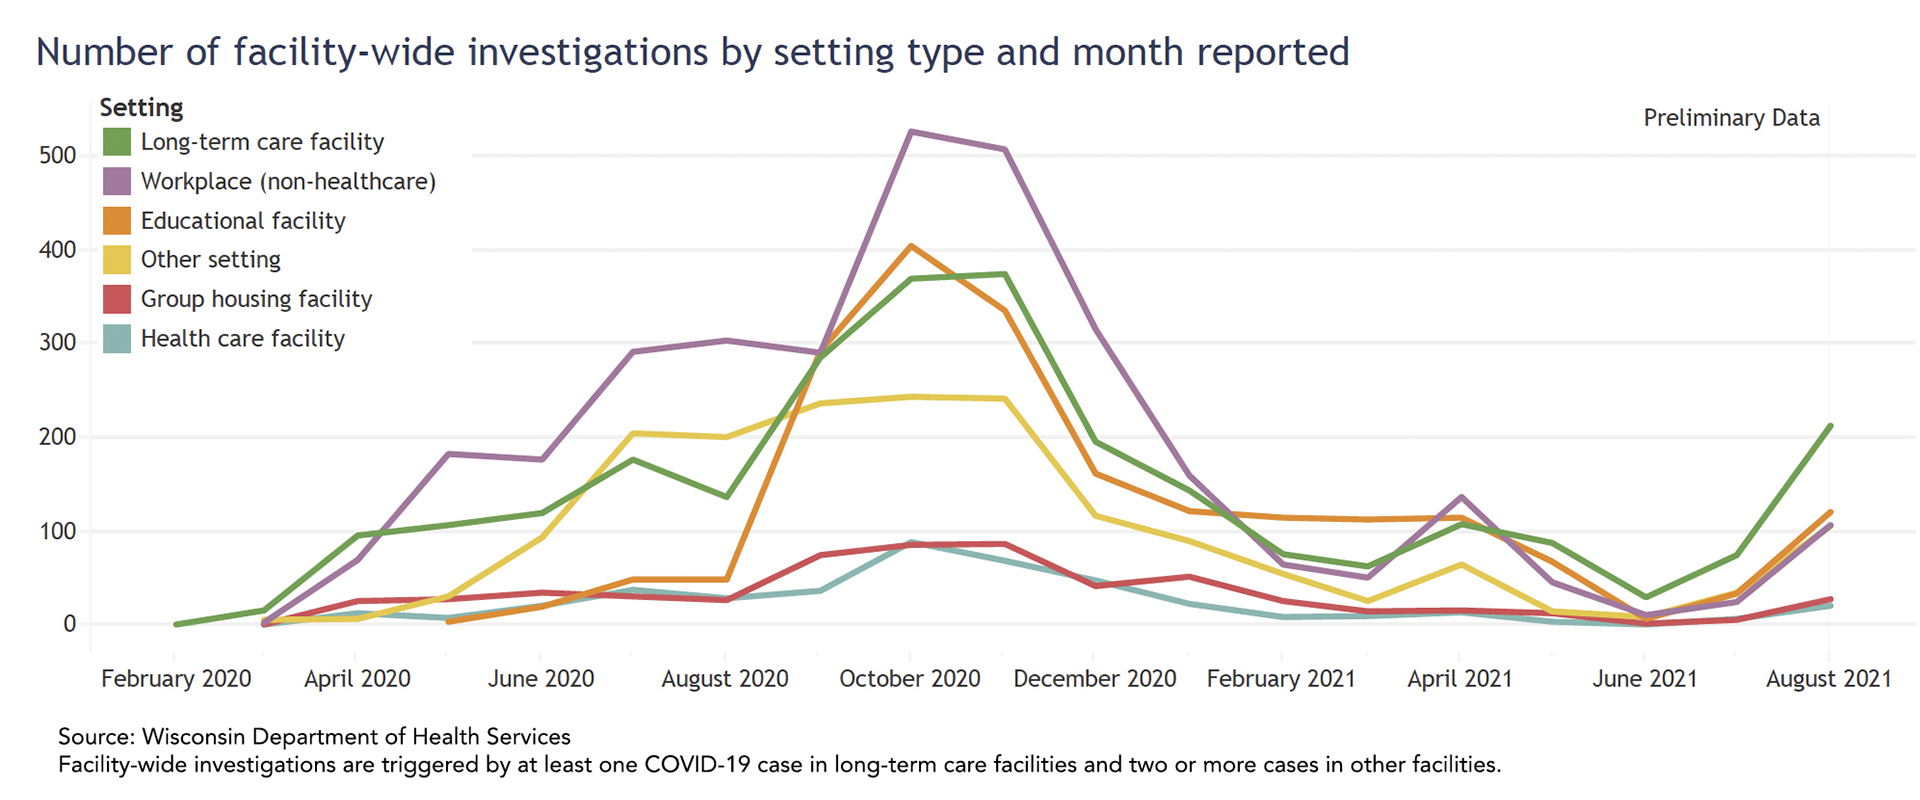 A line chart shows the number of facility-wide investigations by setting on a month-to-month basis.